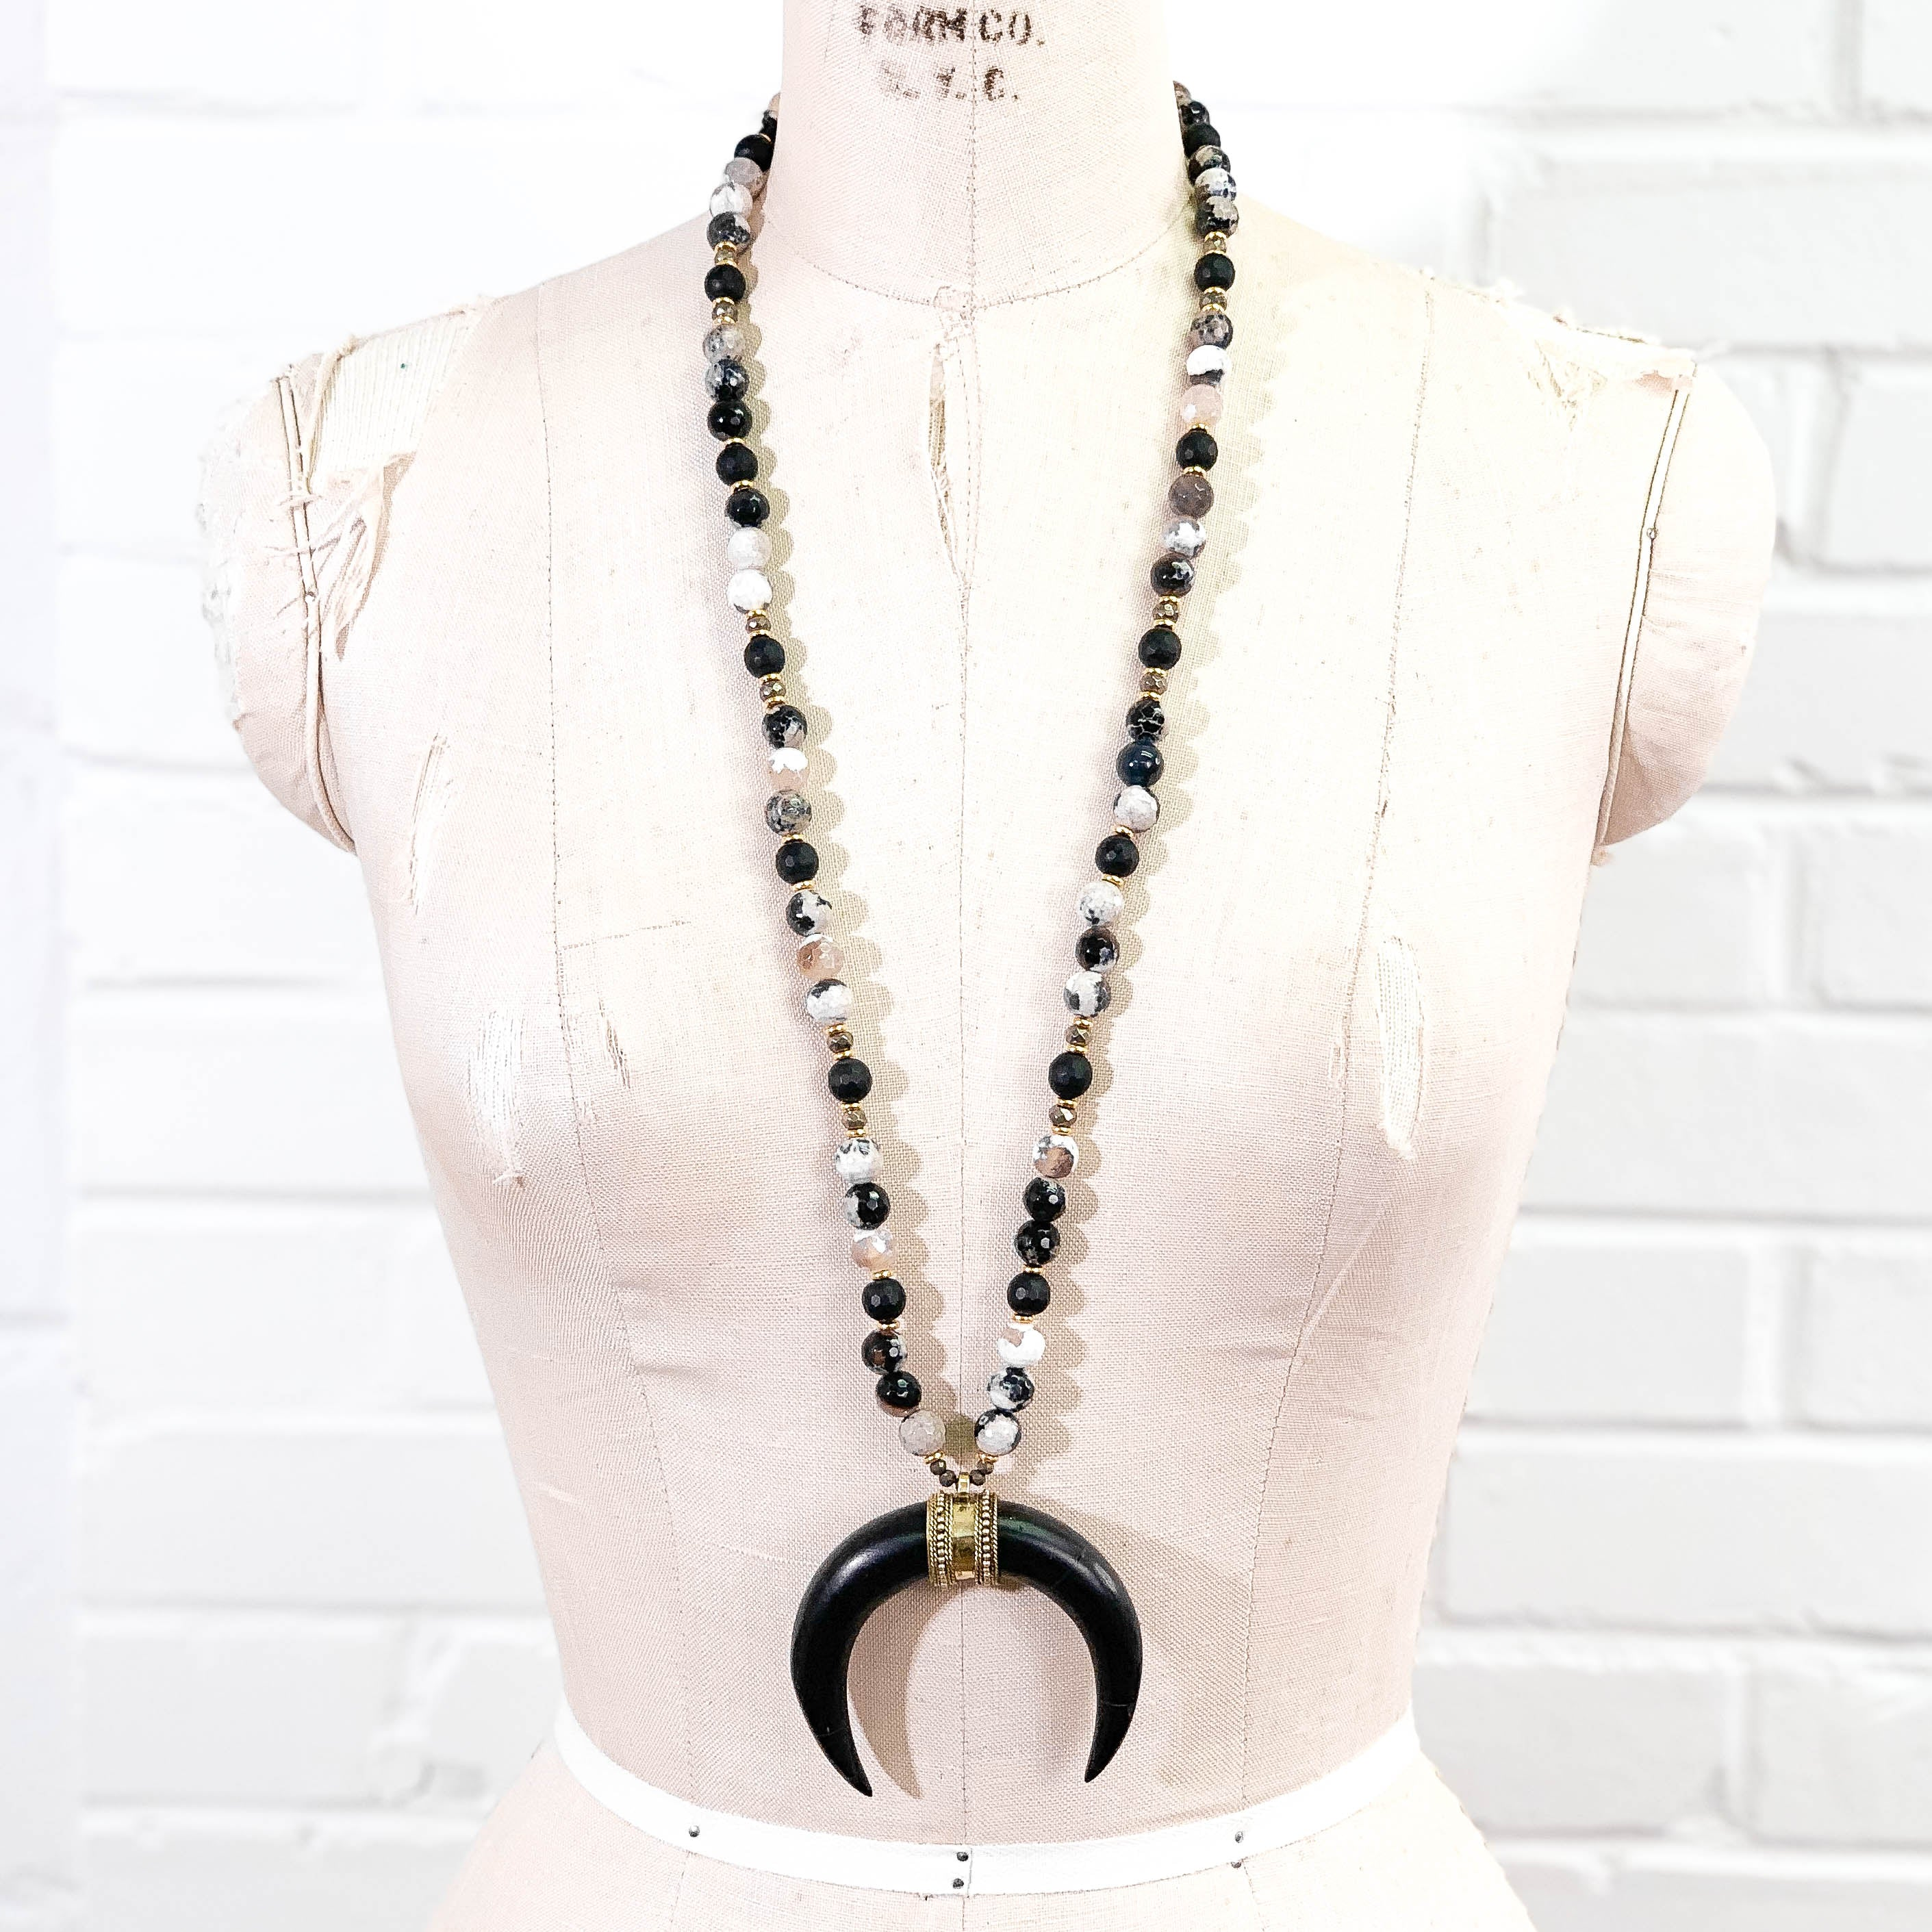 Tibetan Crescent Horn Pendant on Agate & Onyx Necklace